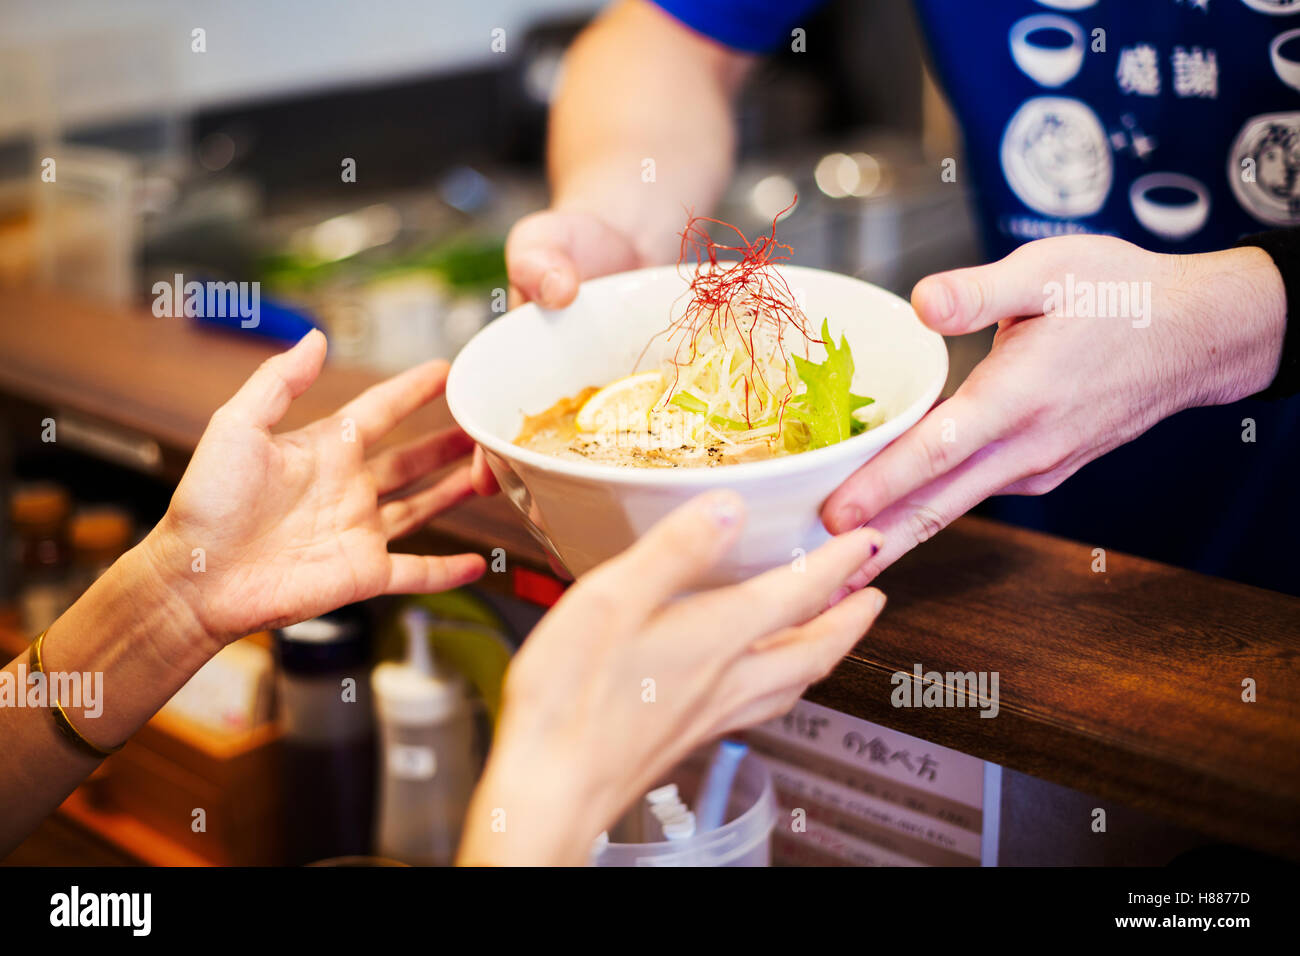 The ramen noodle shop. A chef offering a white bowl of ramen noodle broth to a customer - Stock Image